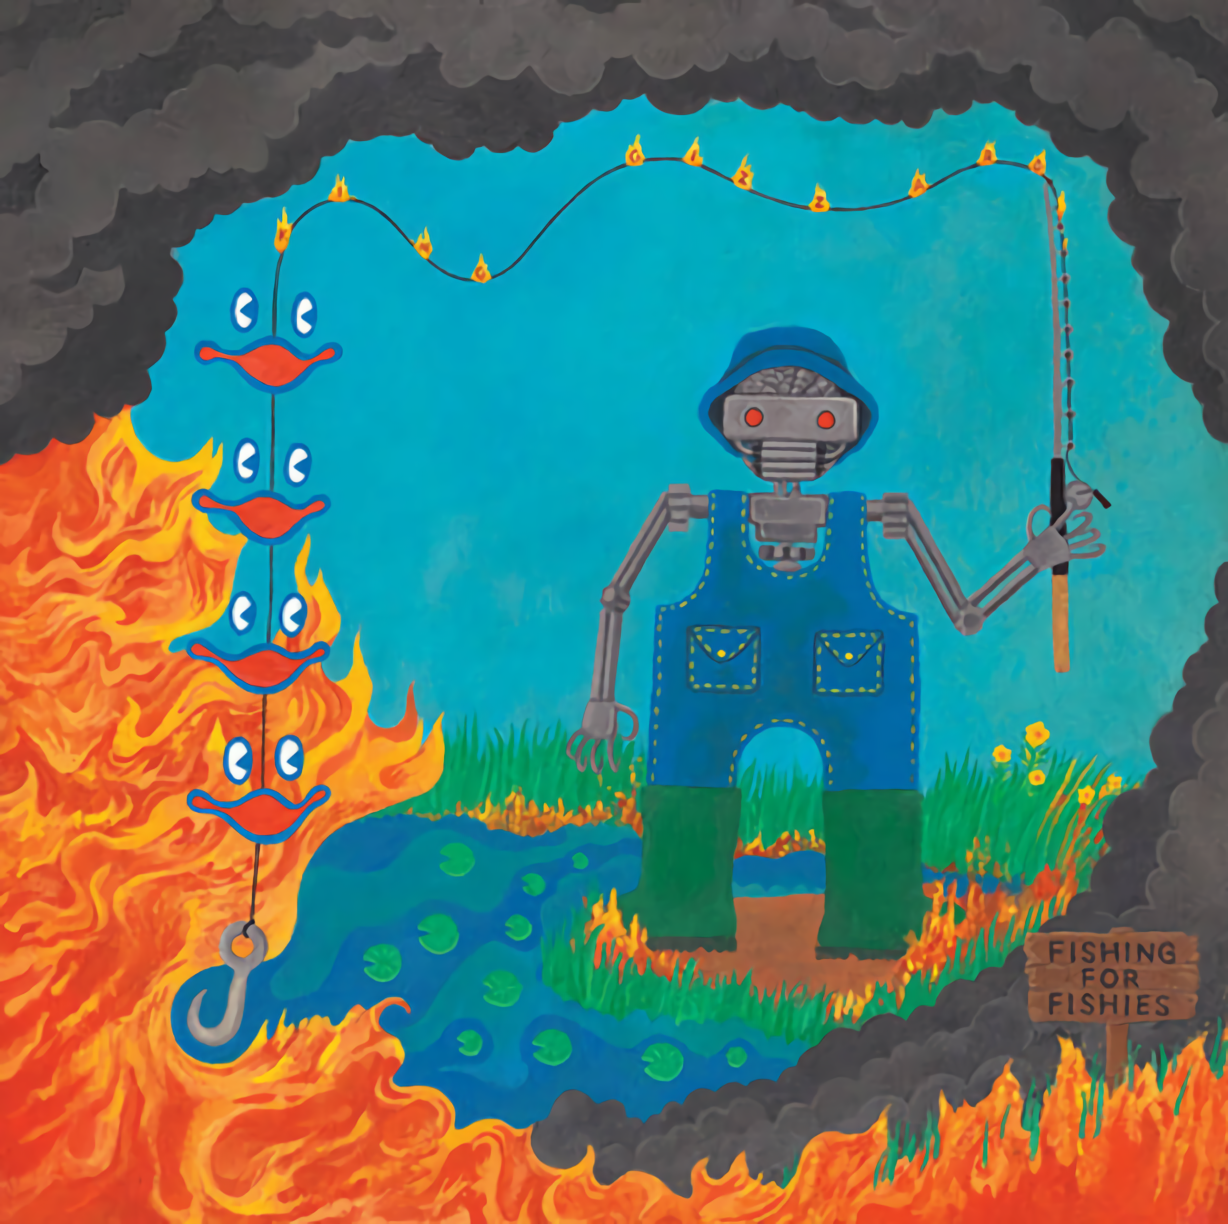 KING GIZZARD & THE LIZARD WIZARD – FISHING FOR FISHIES